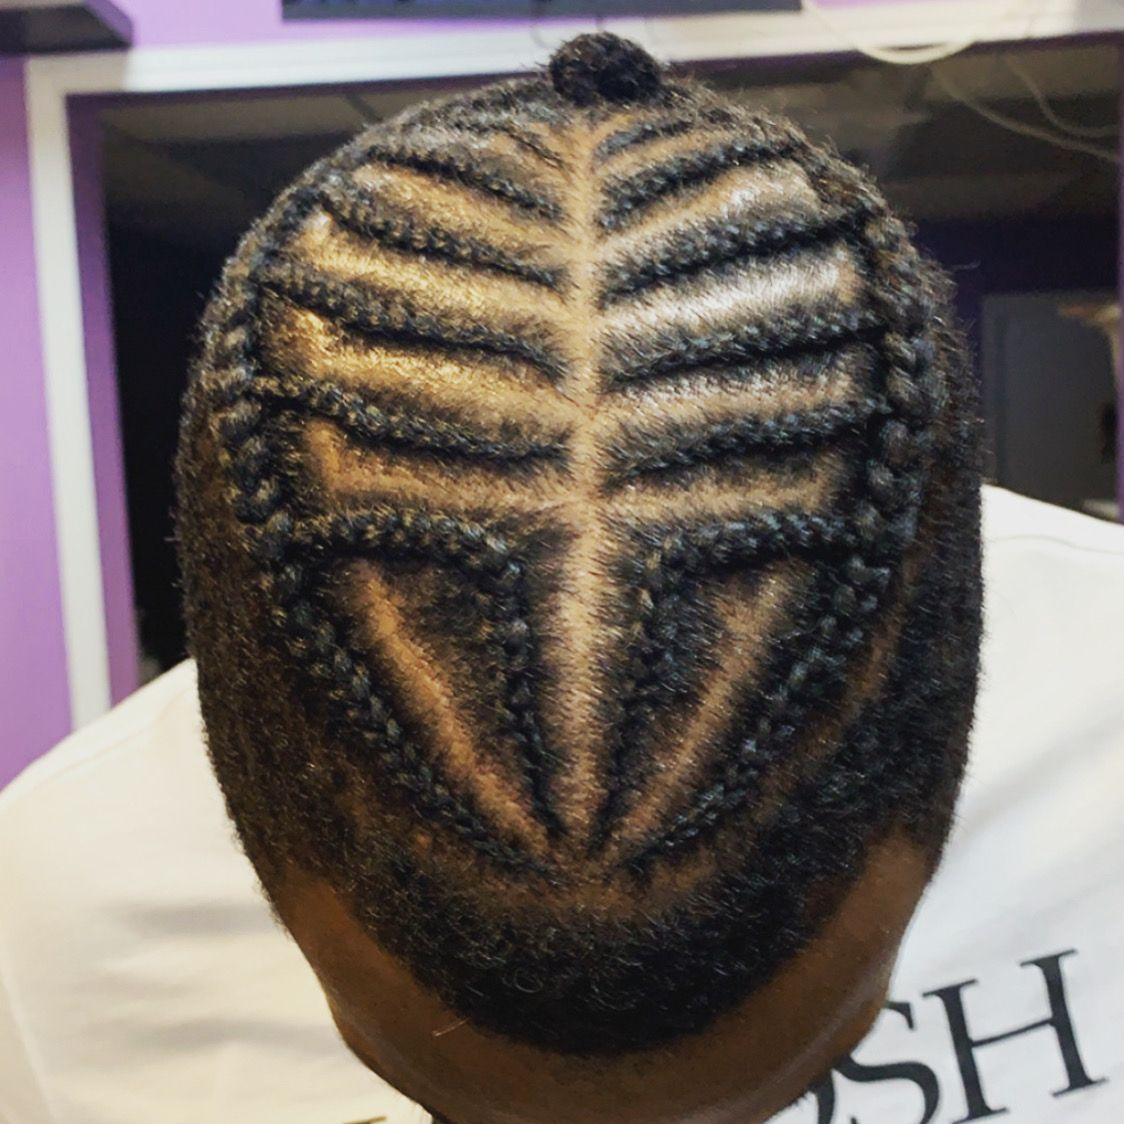 Men Cornrows Design In 2020 African Hair Braiding Salons Braided Hairstyles Hair Braiding Salon